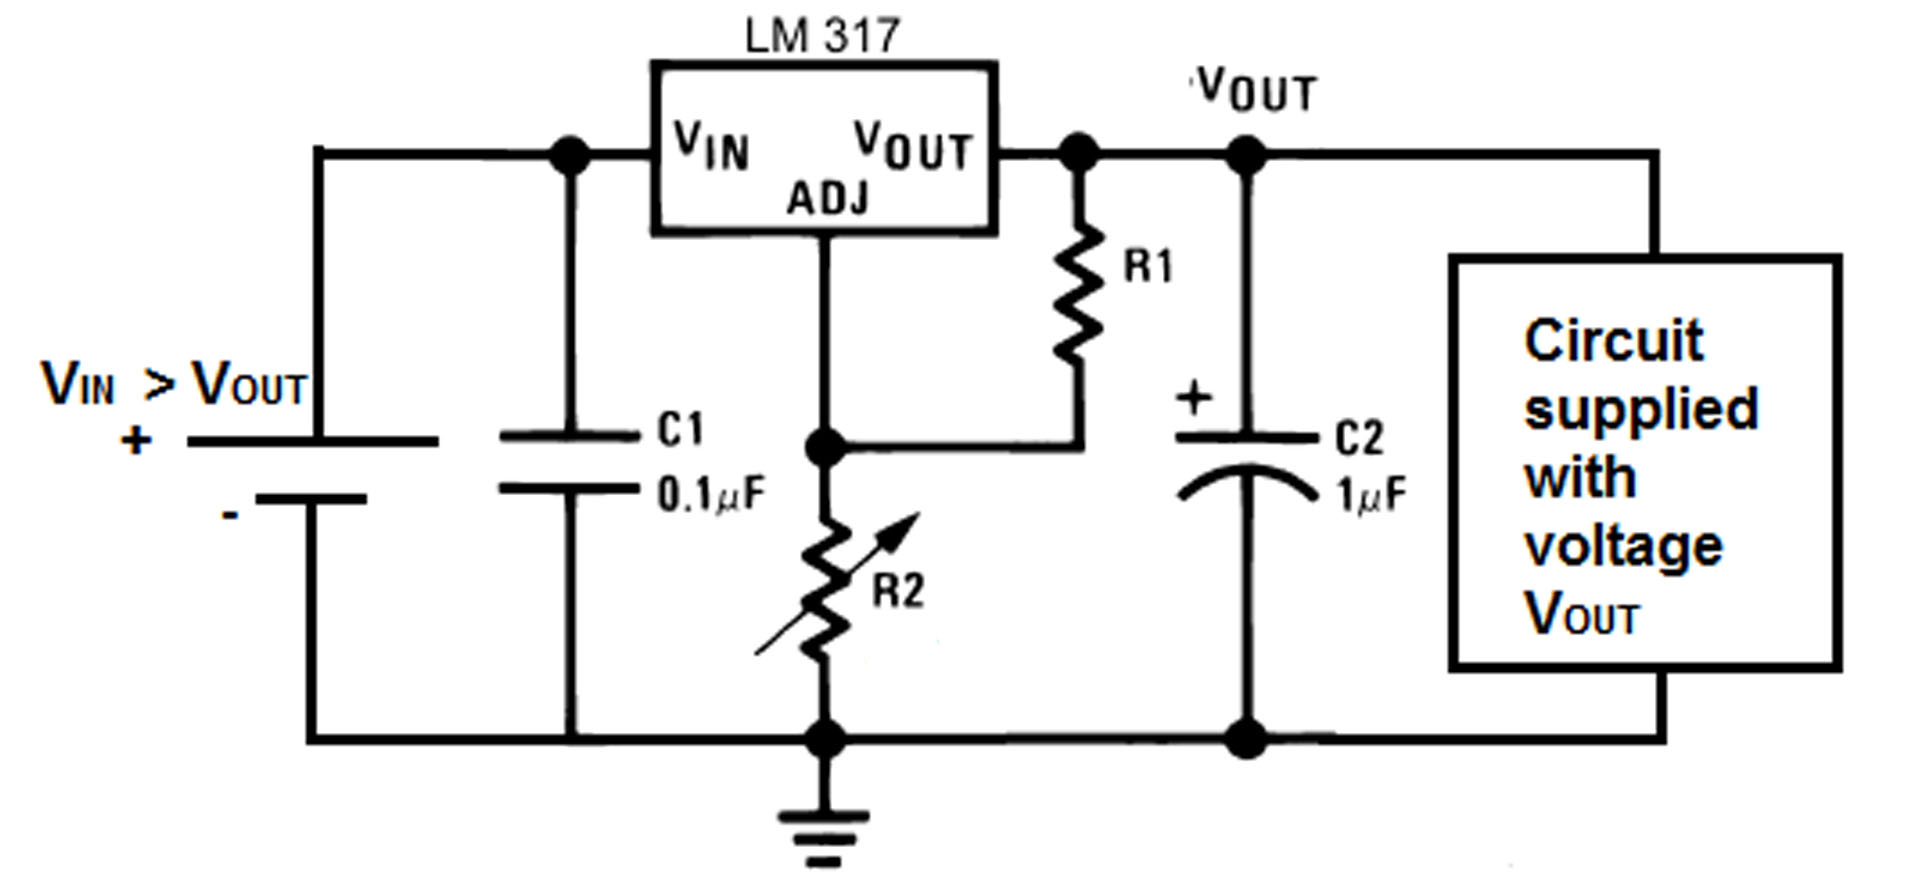 LM317 cirucit schematic calculator